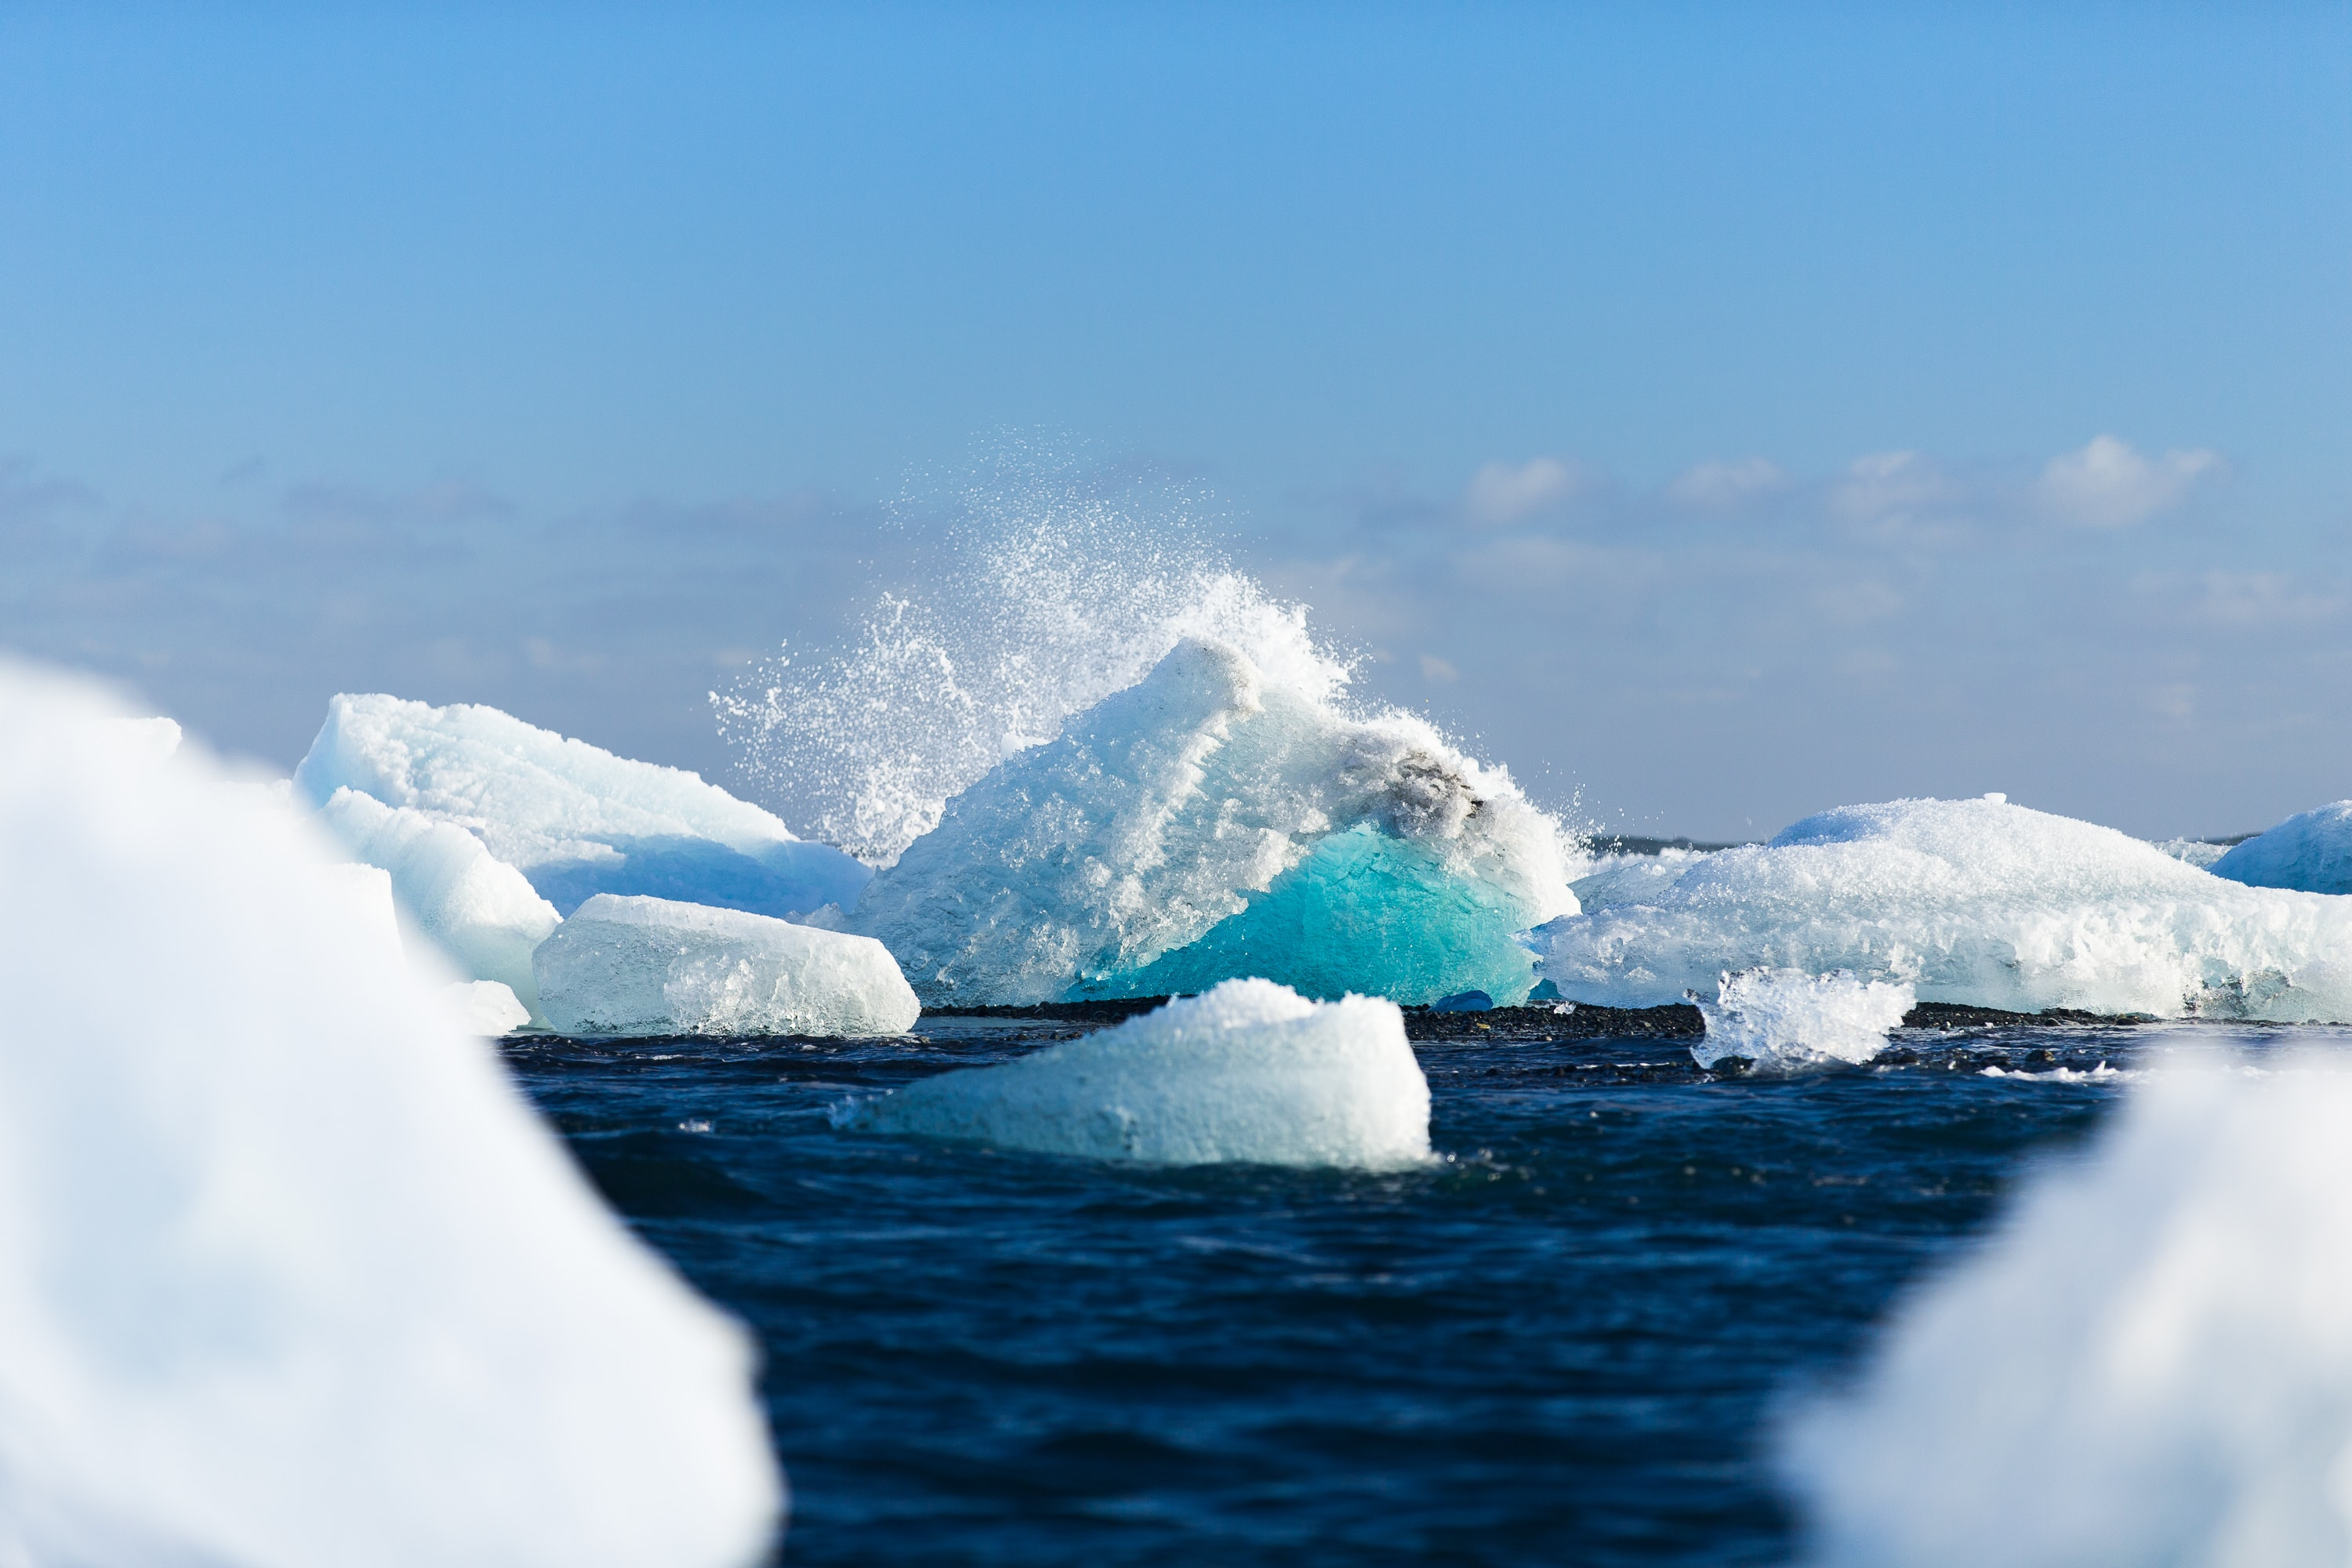 icebergs floating on body of water during daytime